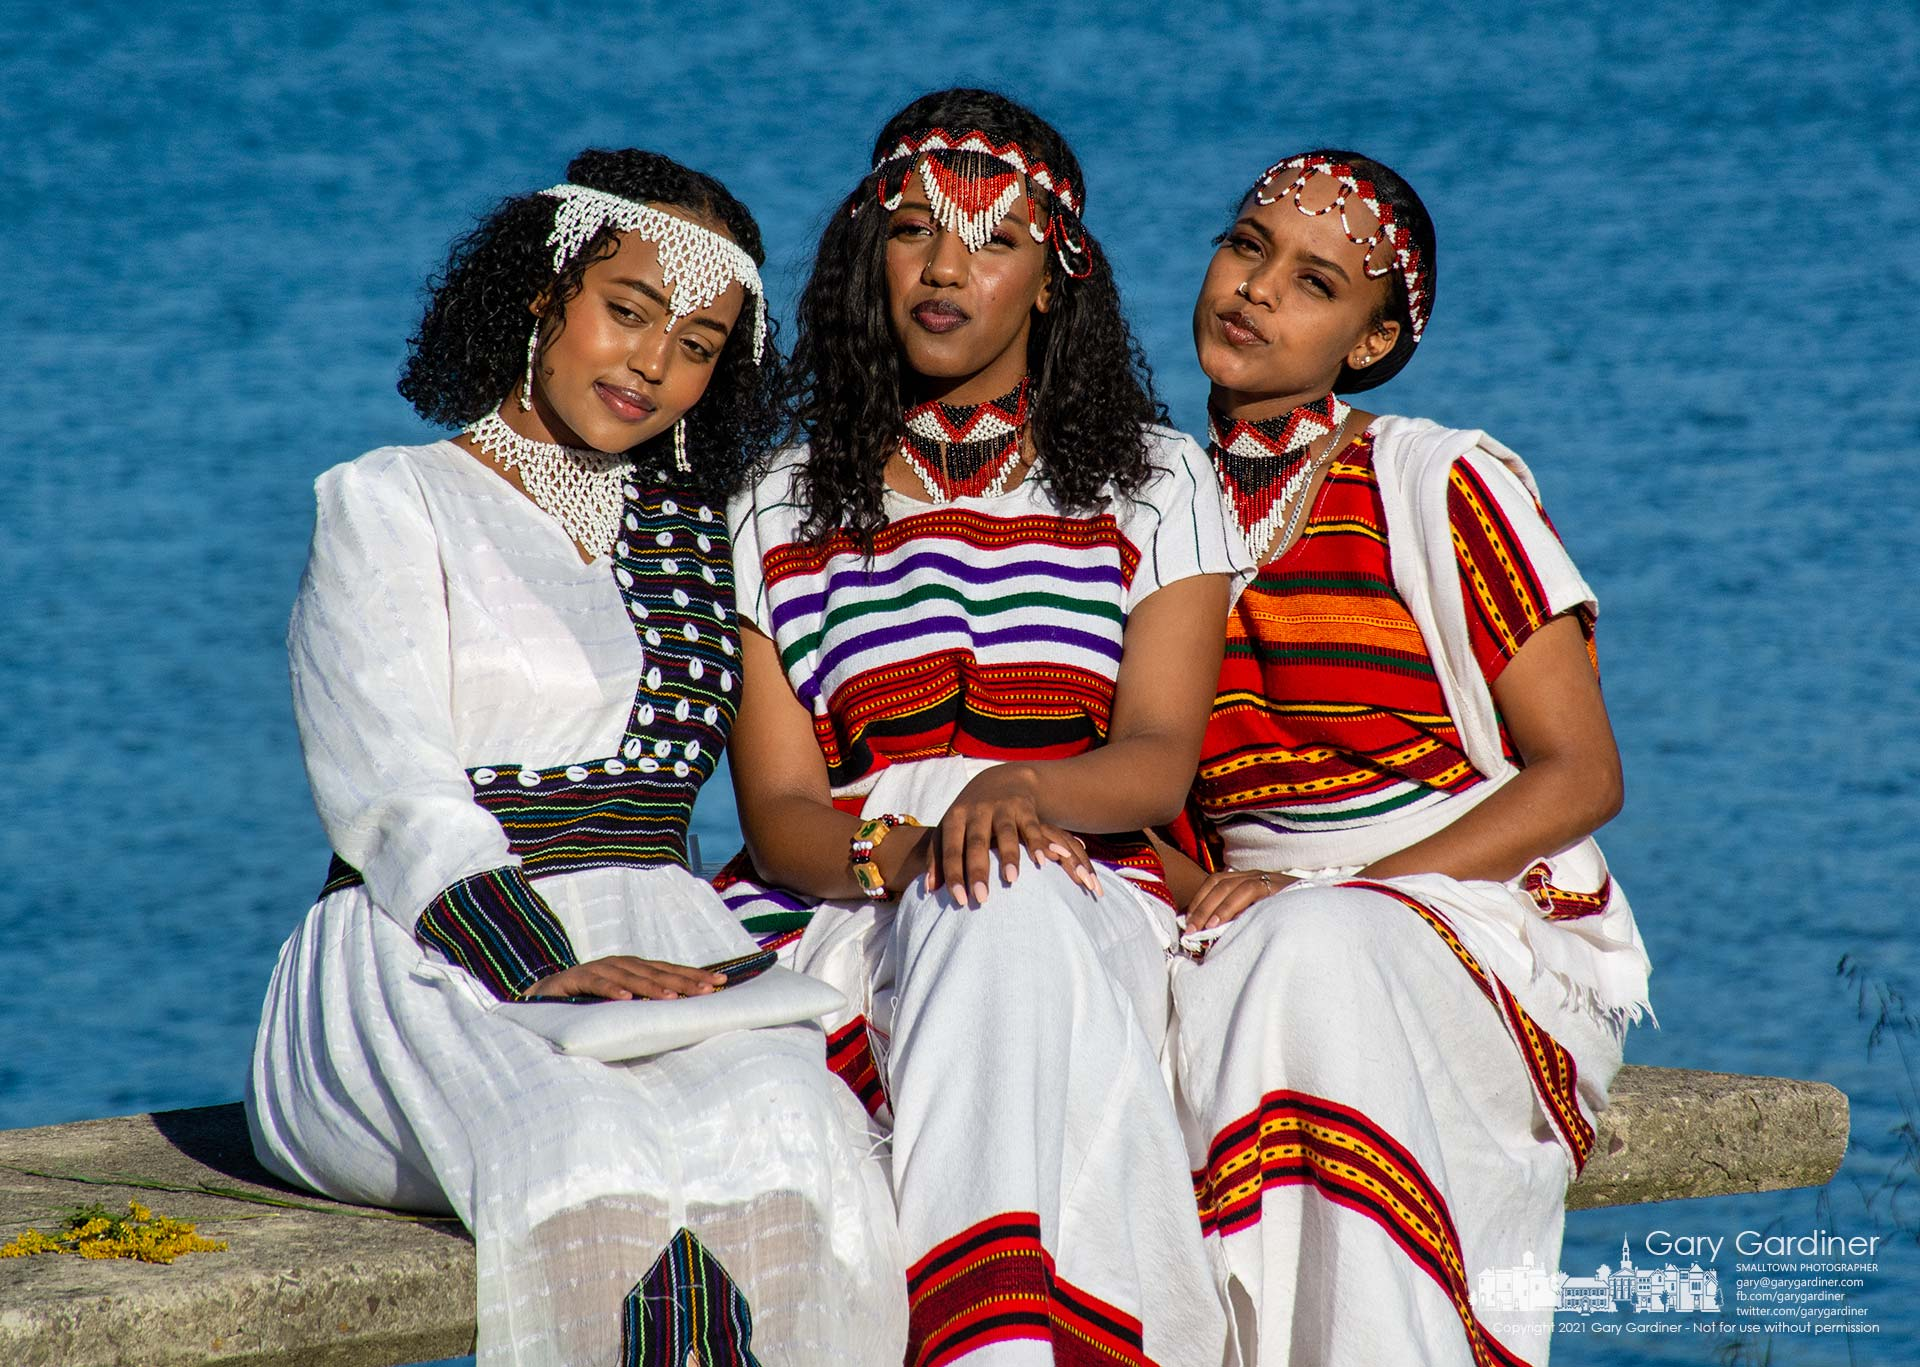 Three Oromia women wearing chelie beadwork pose for a photo with their family during the group's celebration of Irreecha, a tradition marking the end of the rainy season for the regional state in Ethiopia. My Final Photo for Sept. 26, 2021.